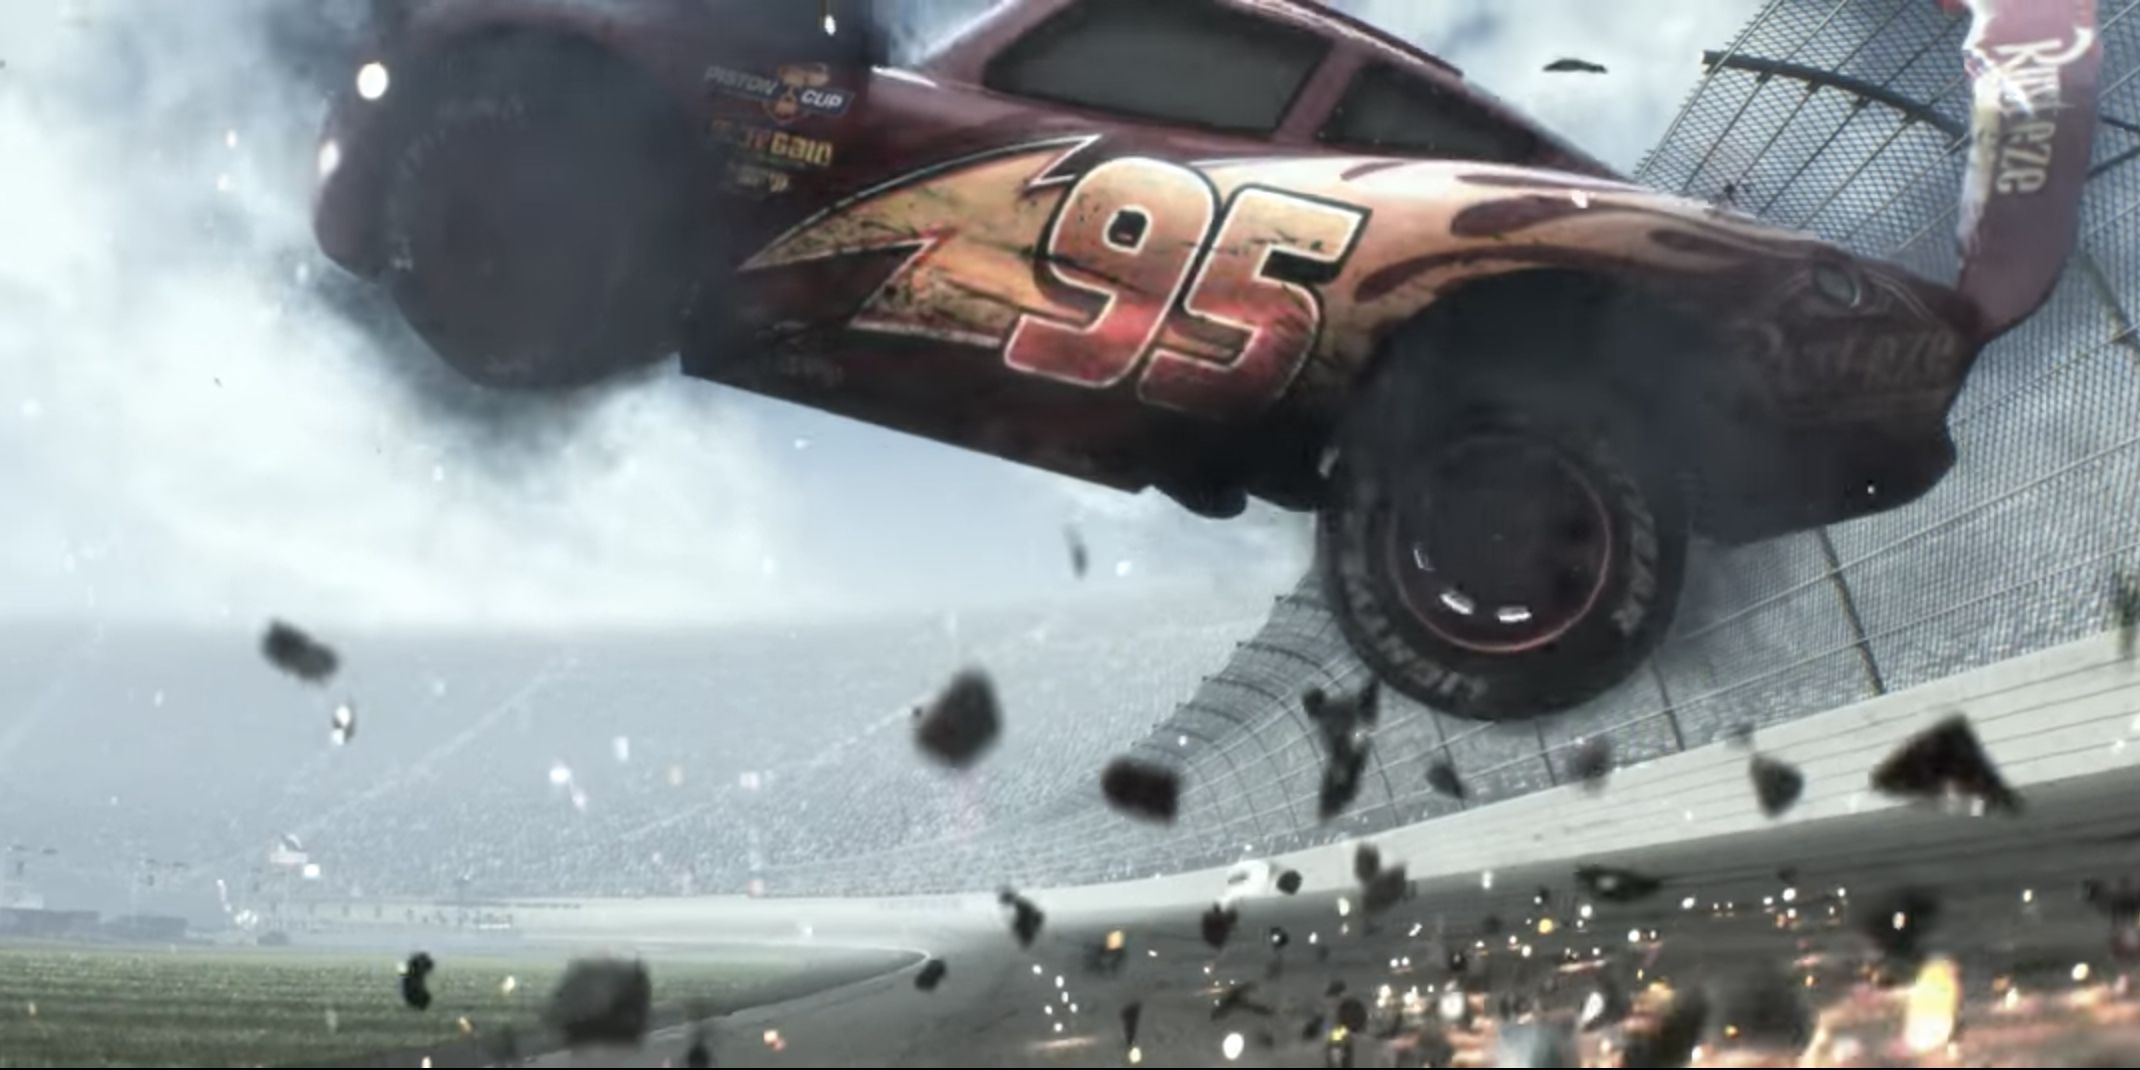 Pixar Cars 3 First Trailer - New Cars Movie Debuts June 2017